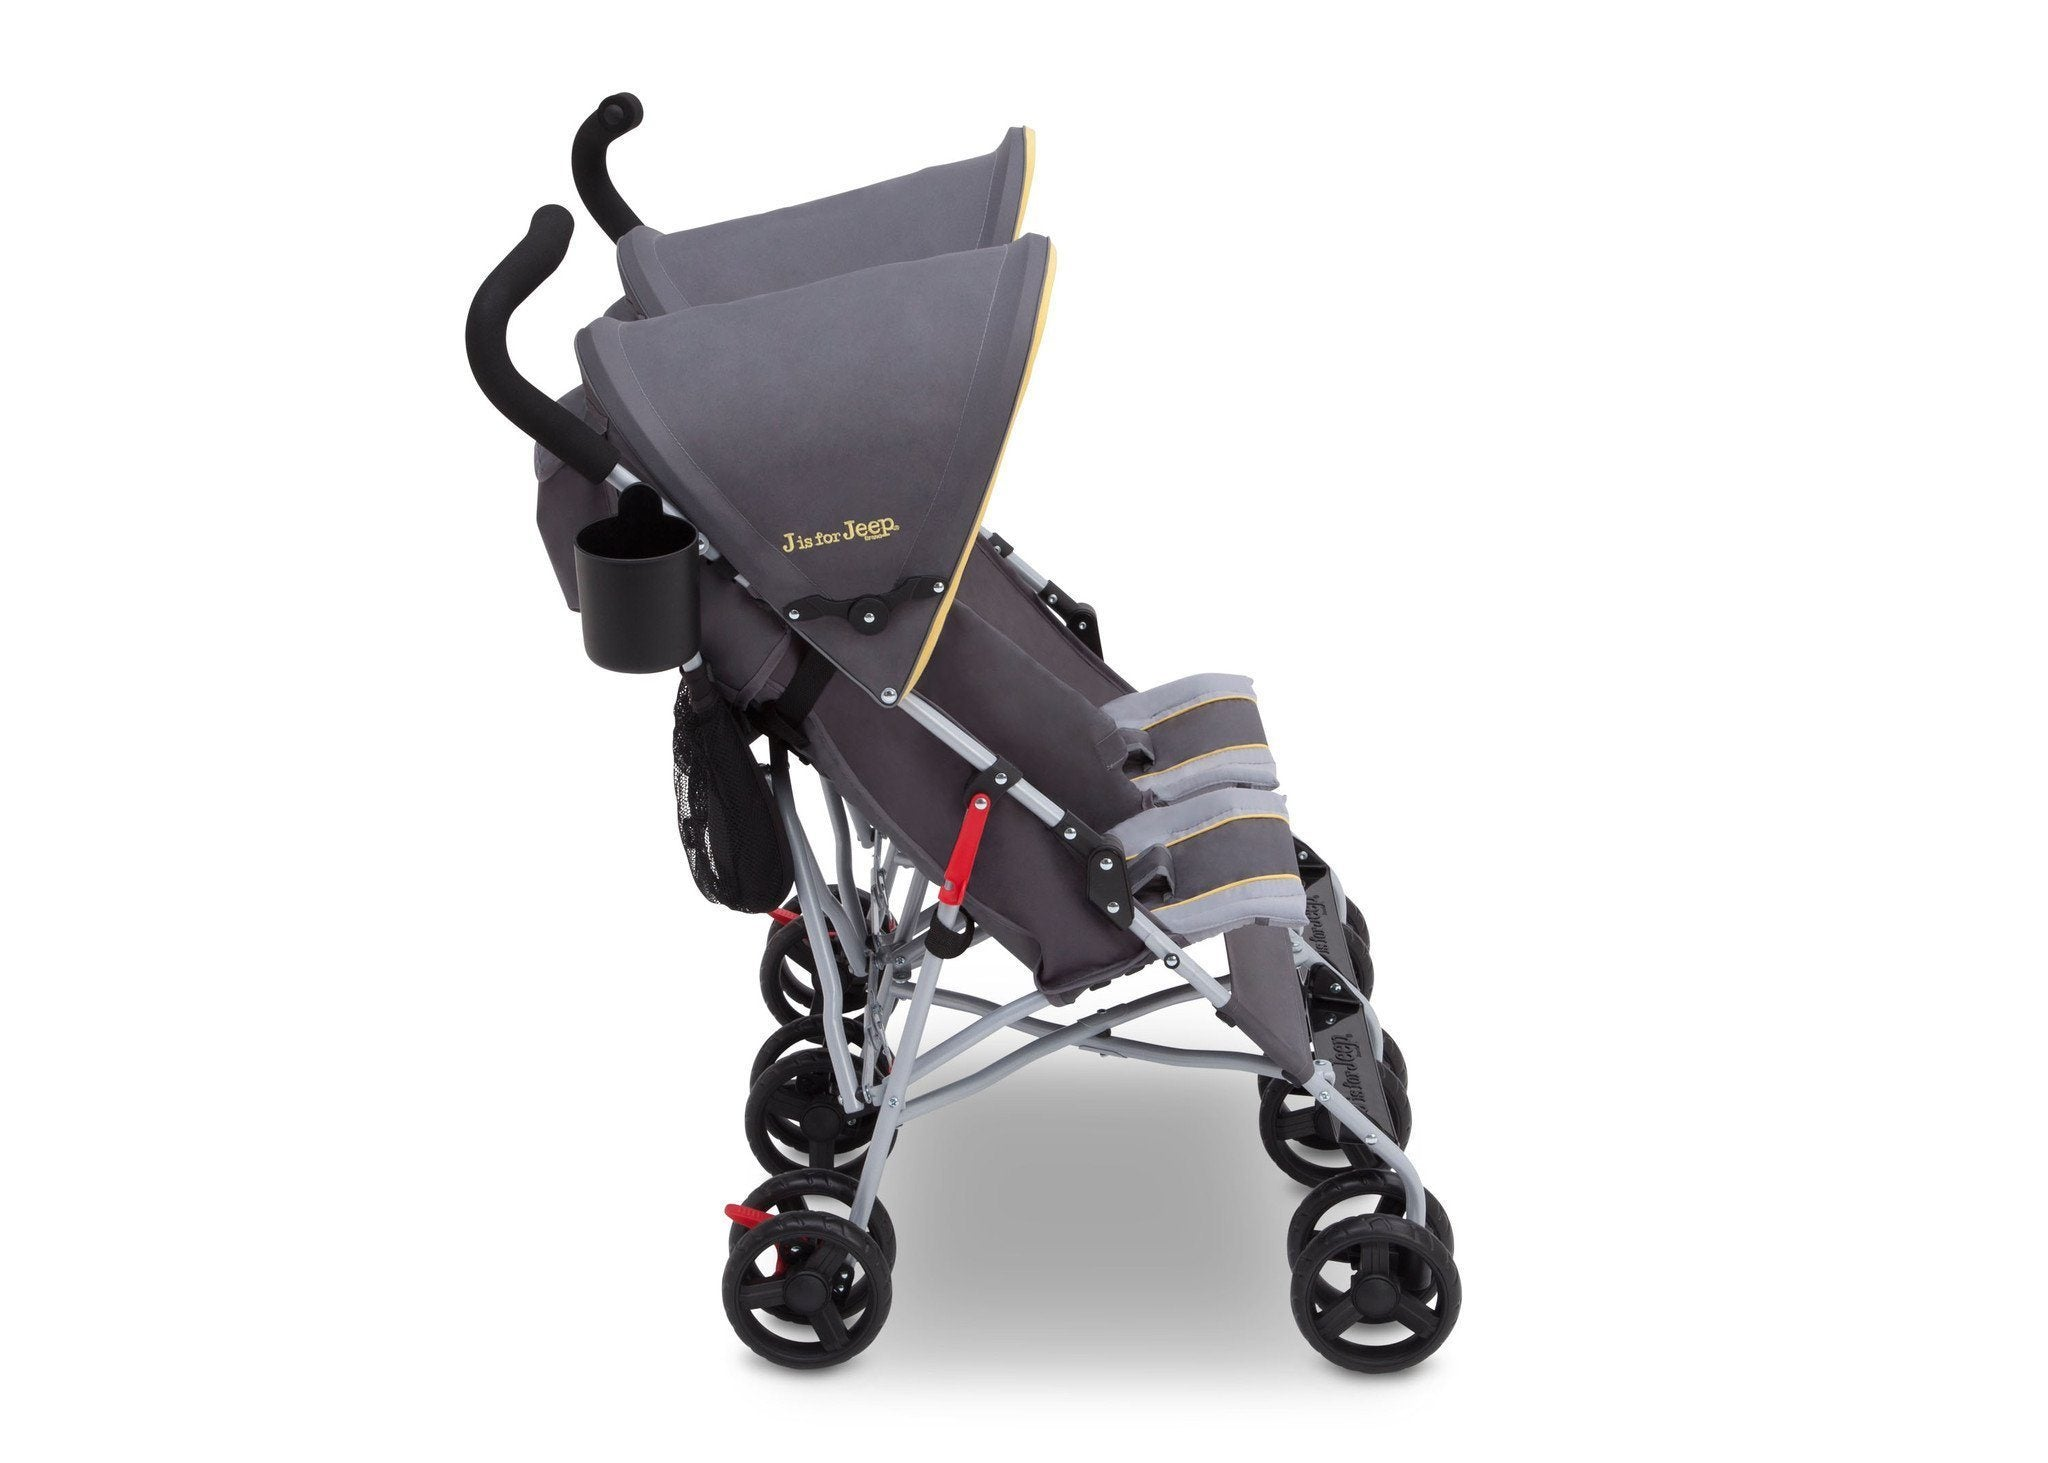 Jeep Brand Scout Double Stroller by Delta Children, Spot On (722), with parent cup holder